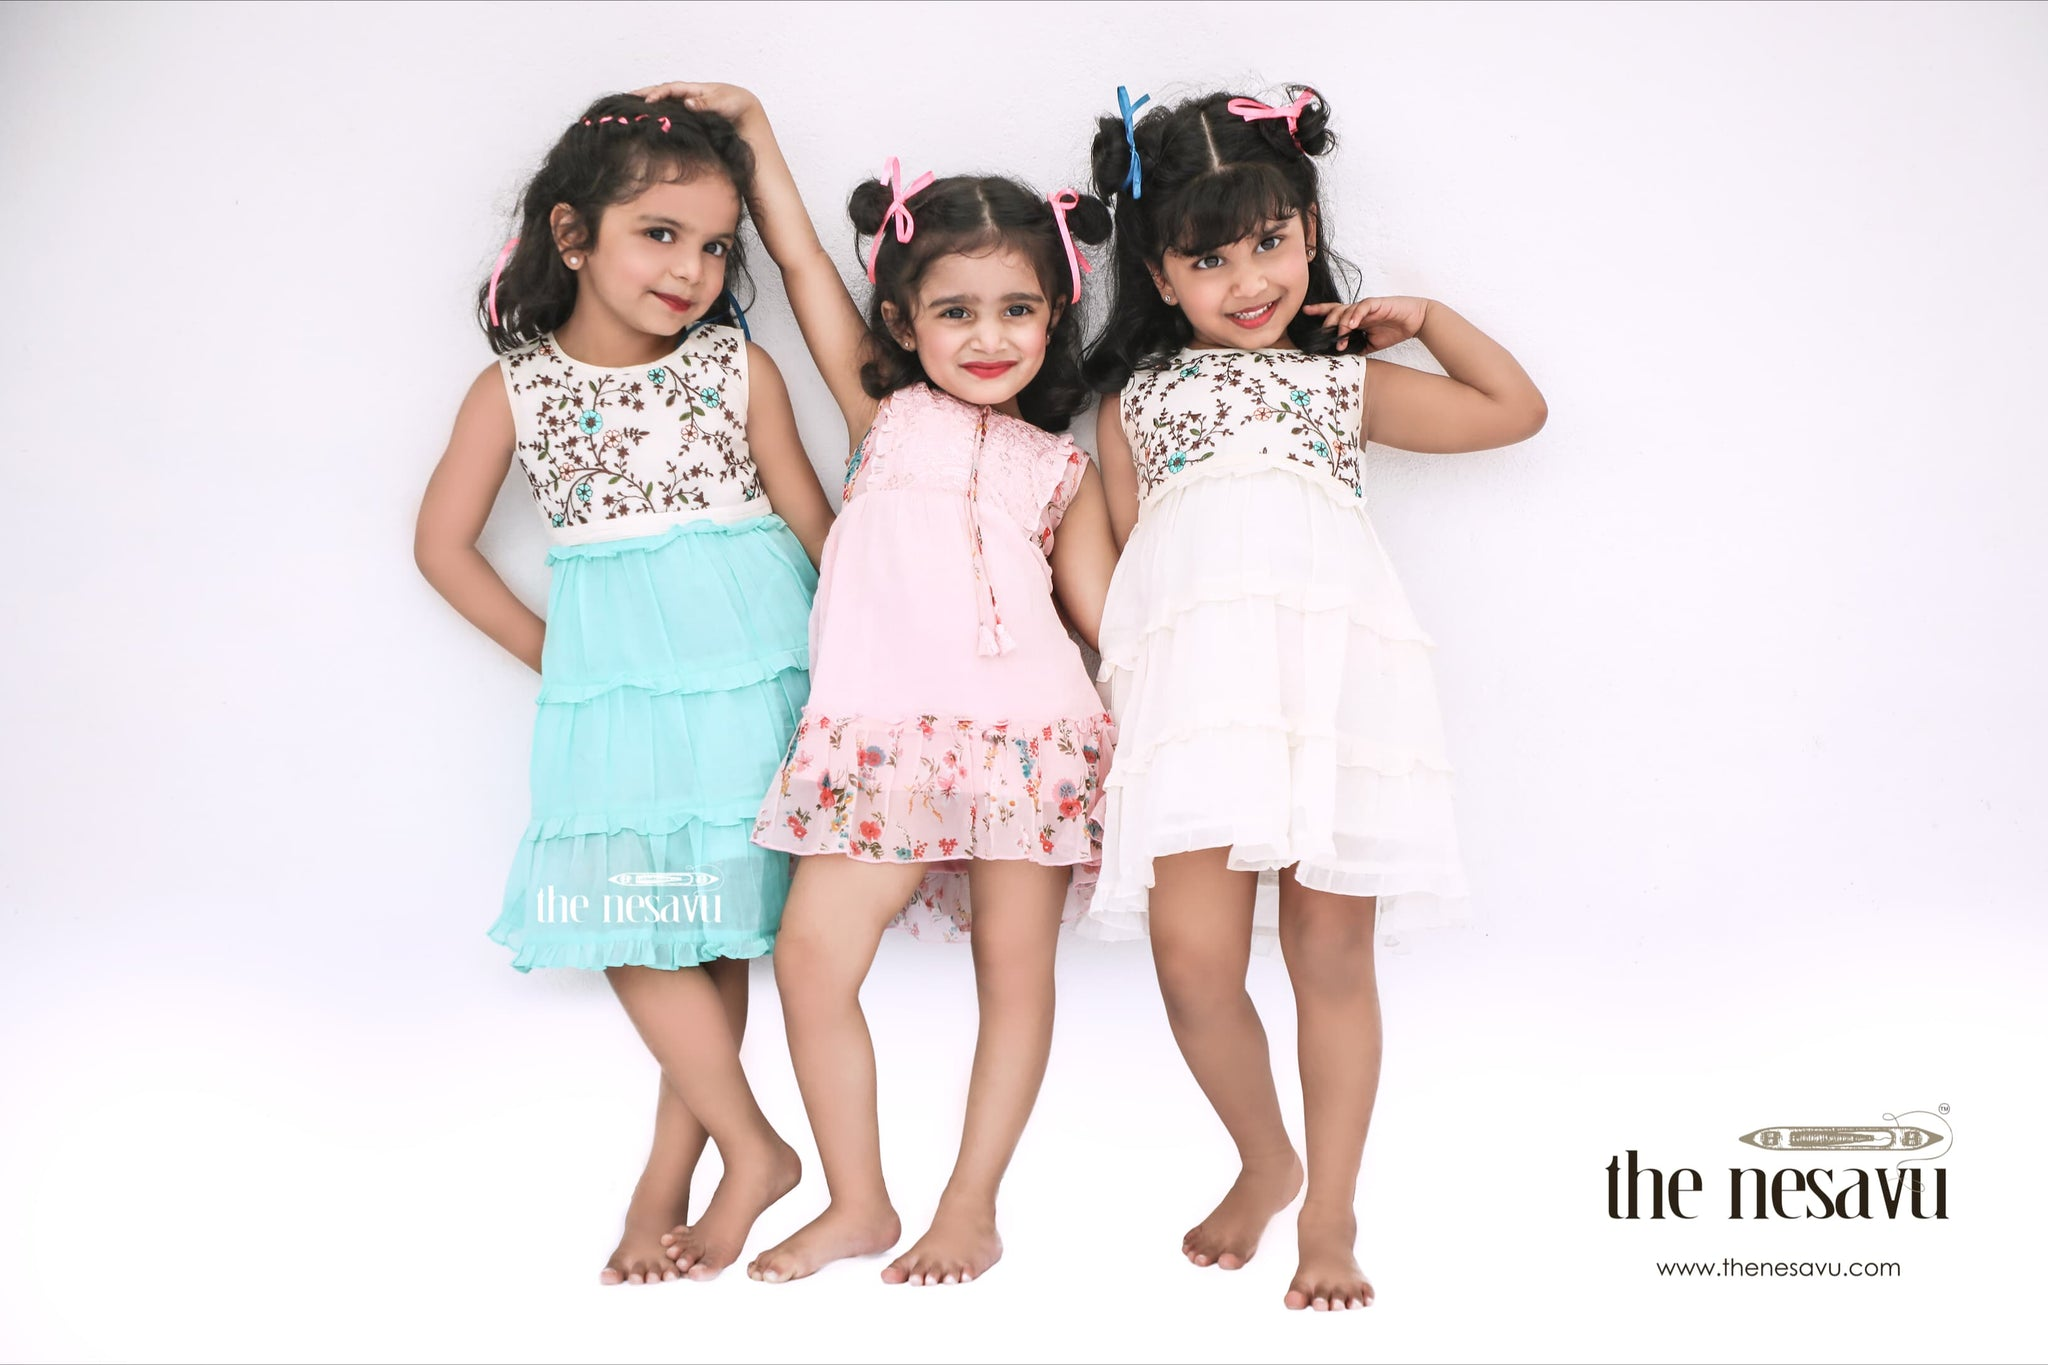 nesavu-brand-cotton frocks for girls and kids playwear summer and all season dress collection picnic wear made of sustainable fabric